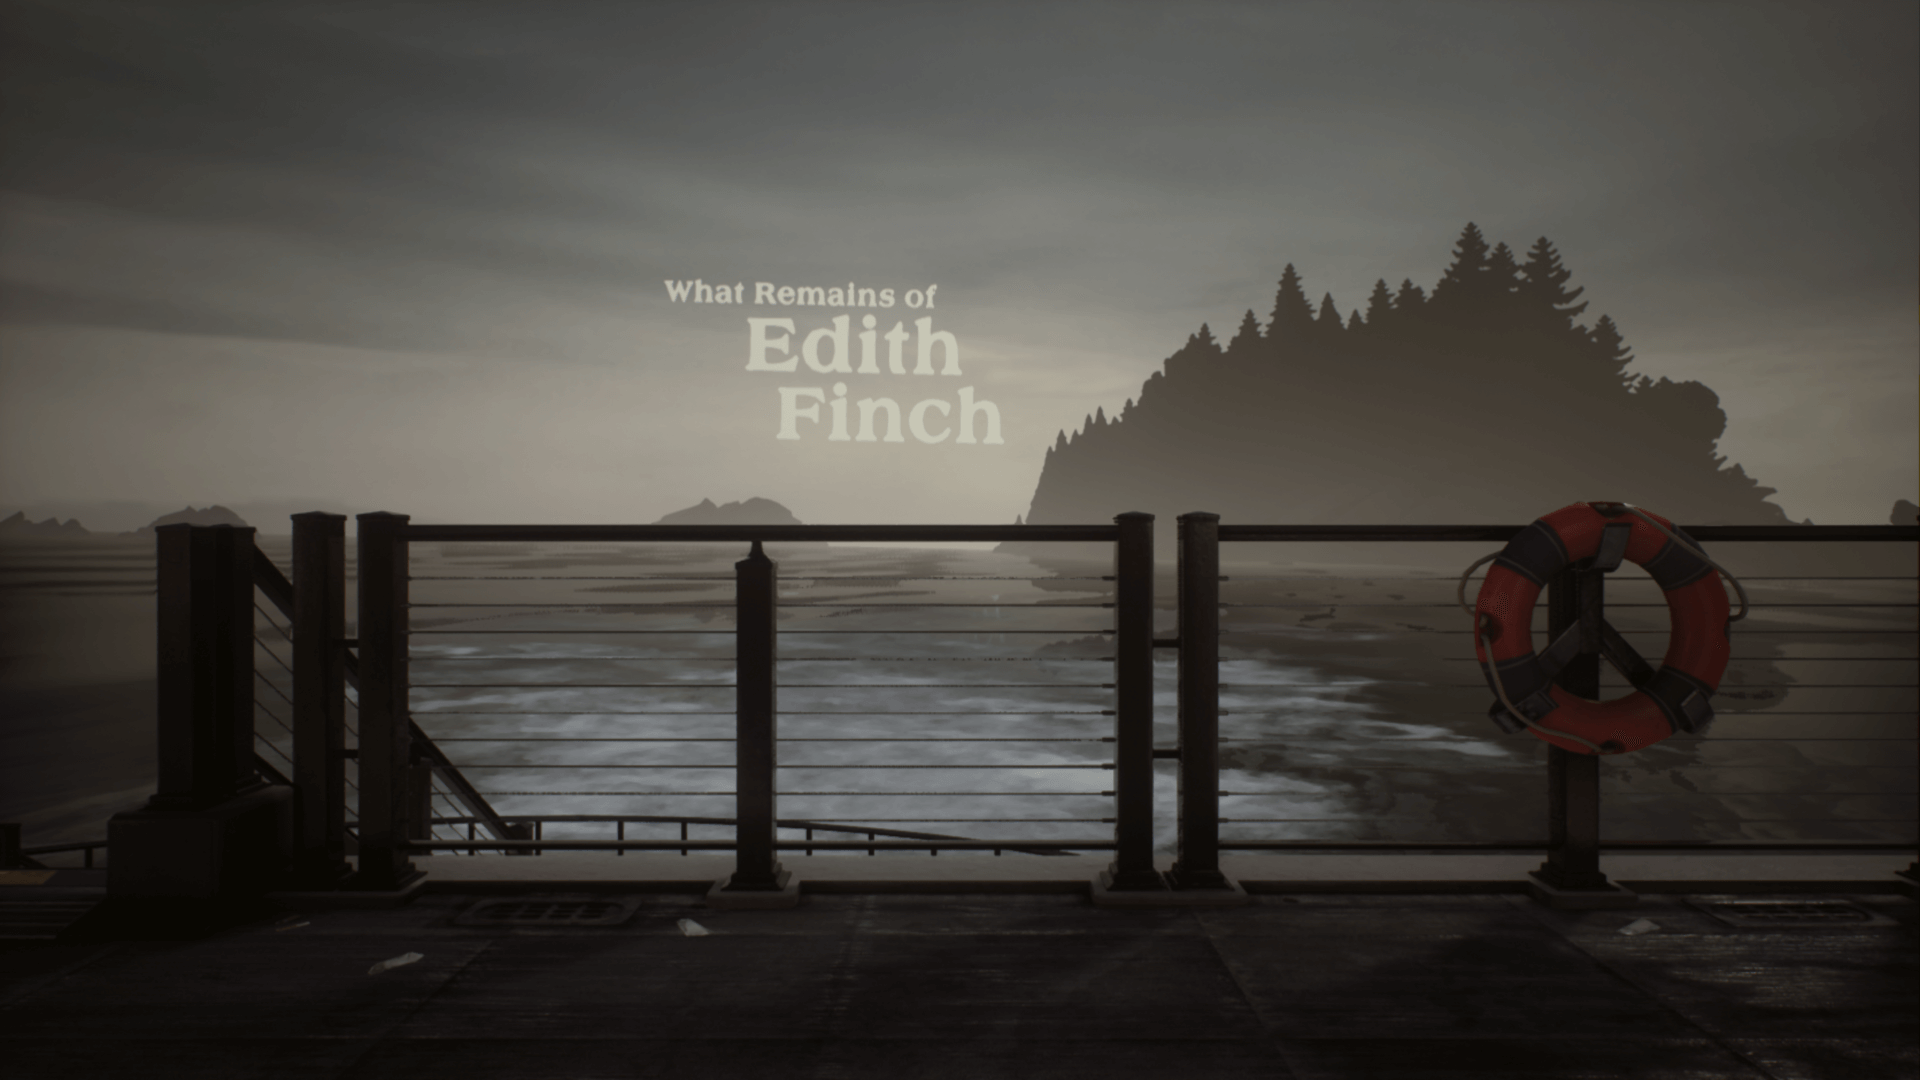 What Remains of Edith Finch 艾迪芬奇的记忆